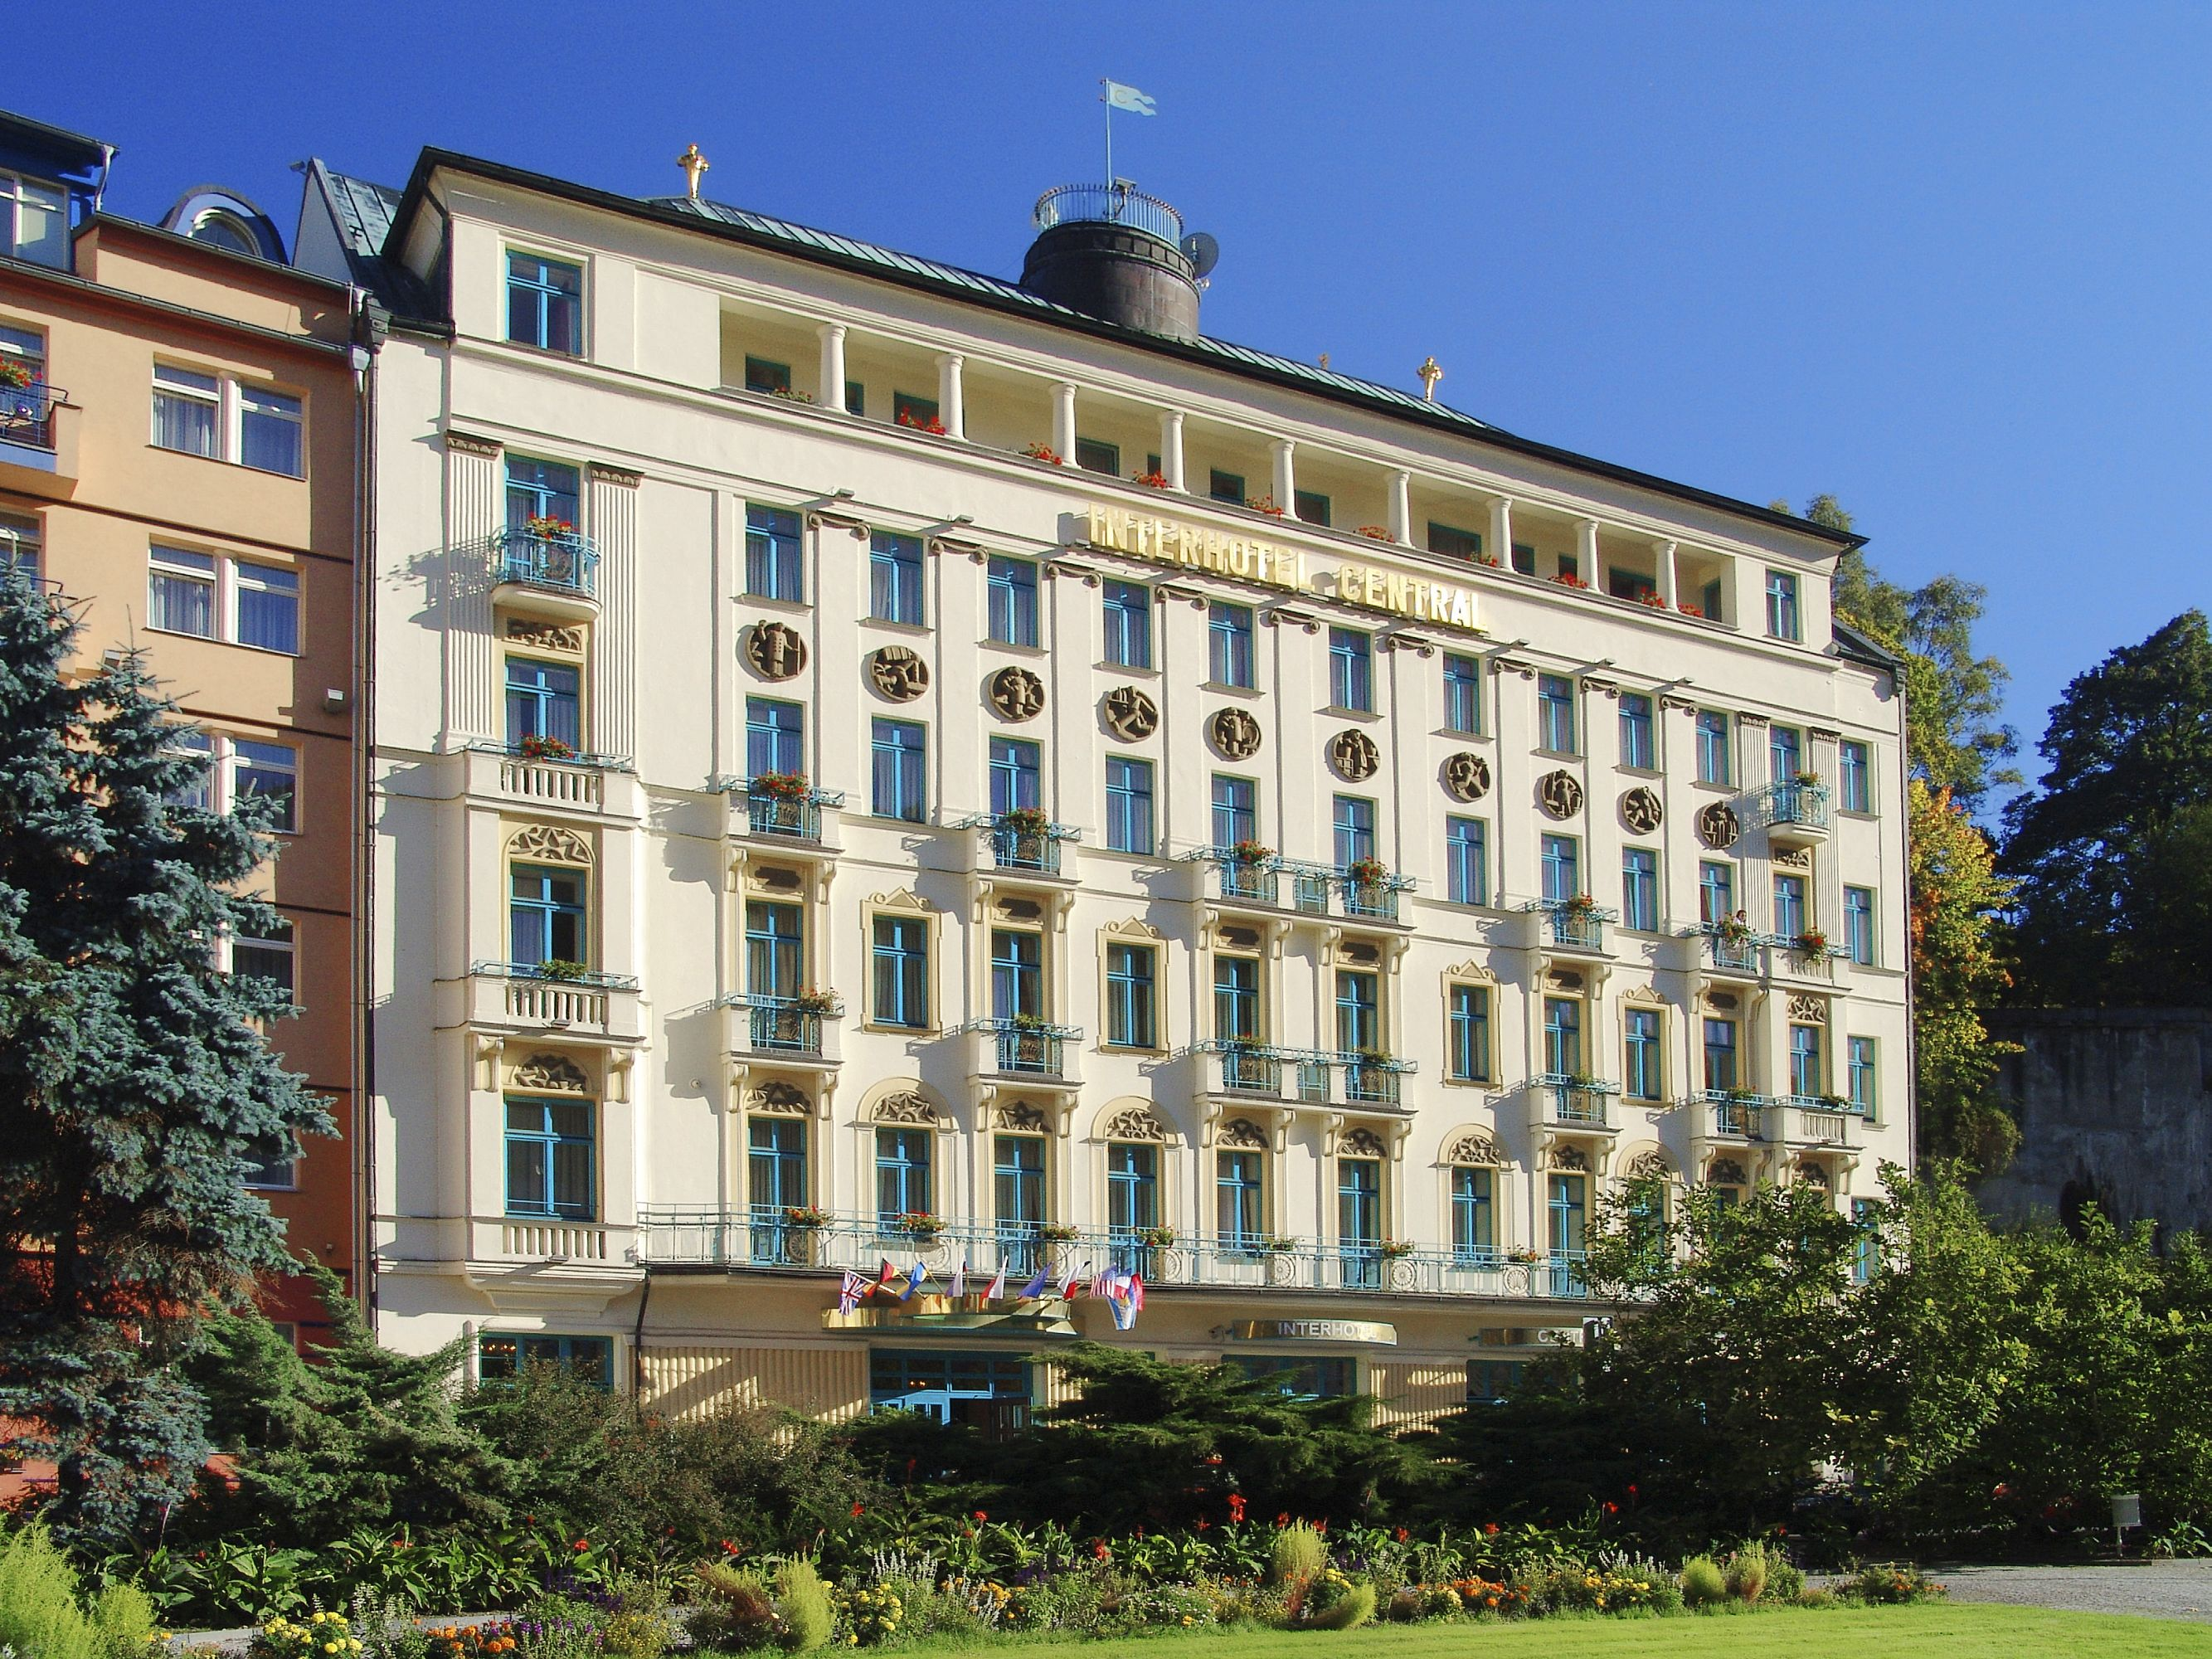 Interhotel Central Karlovy Vary, 4*, Карловы Вары сборник статей resonances science proceedings of articles the international scientific conference czech republic karlovy vary – russia moscow 11–12 february 2016